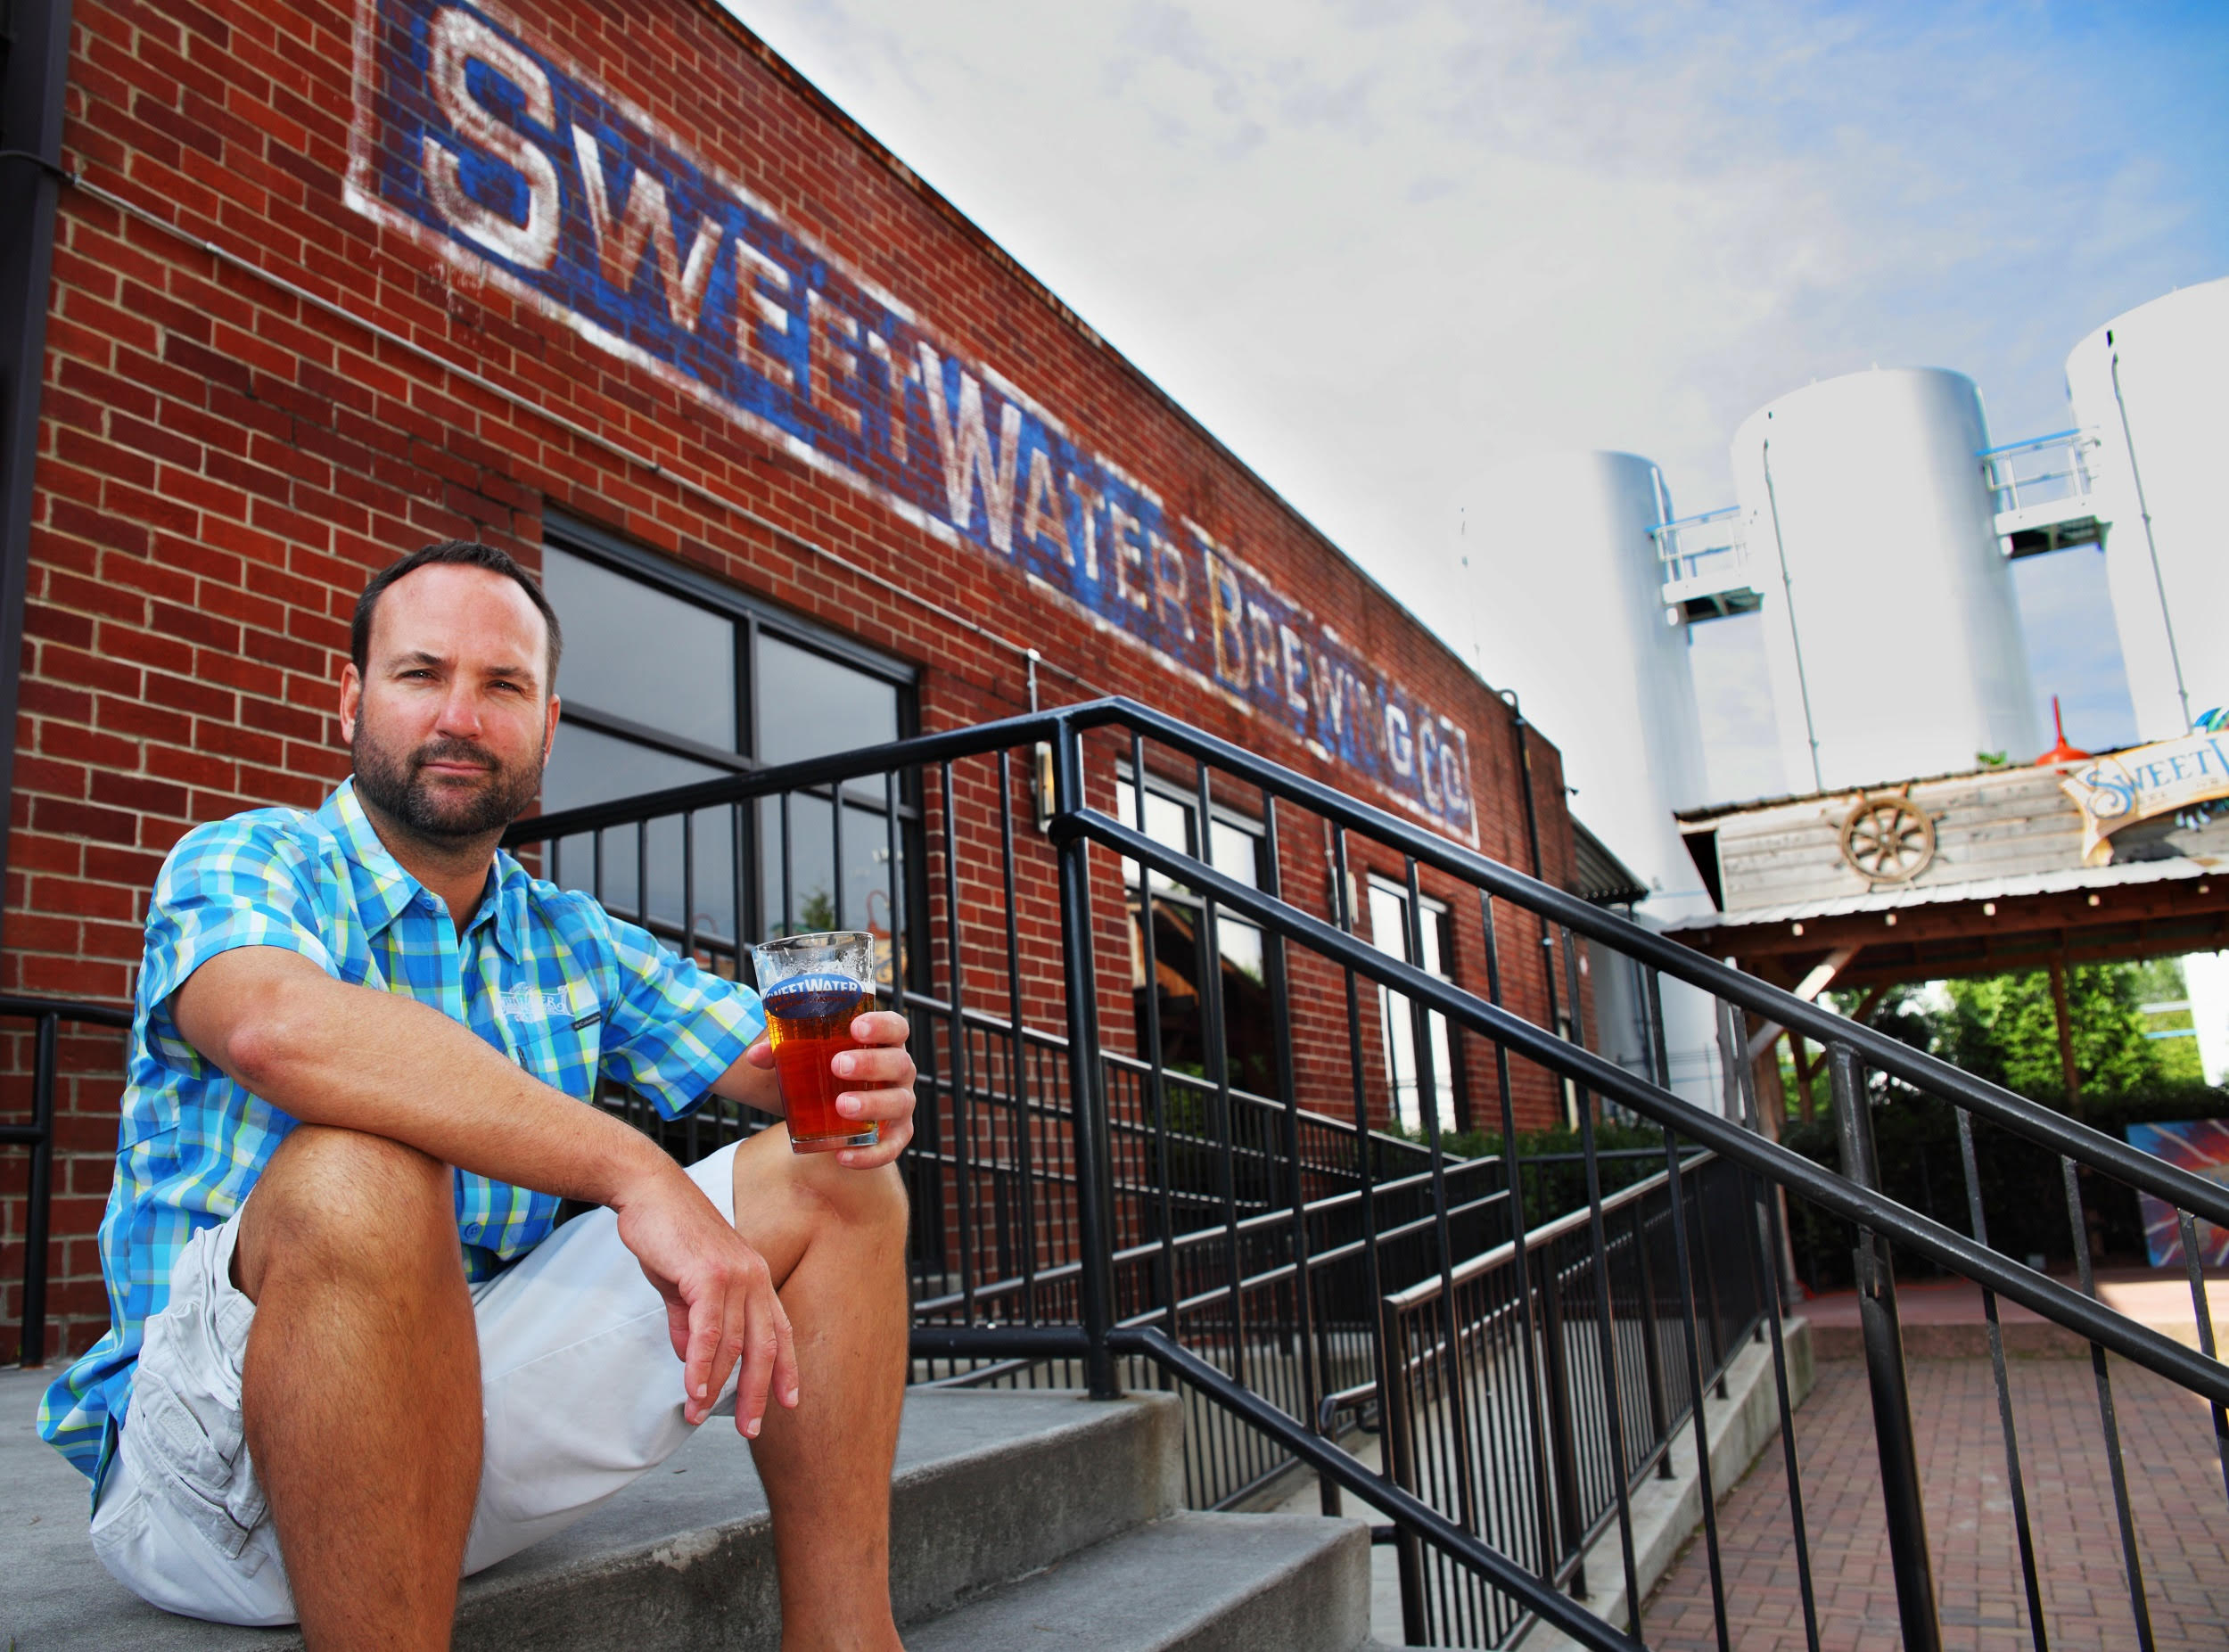 At last a brewery based in the east will expand its brewing capabilities out west atlanta s sweetwater brewing said it plans to build a secondary